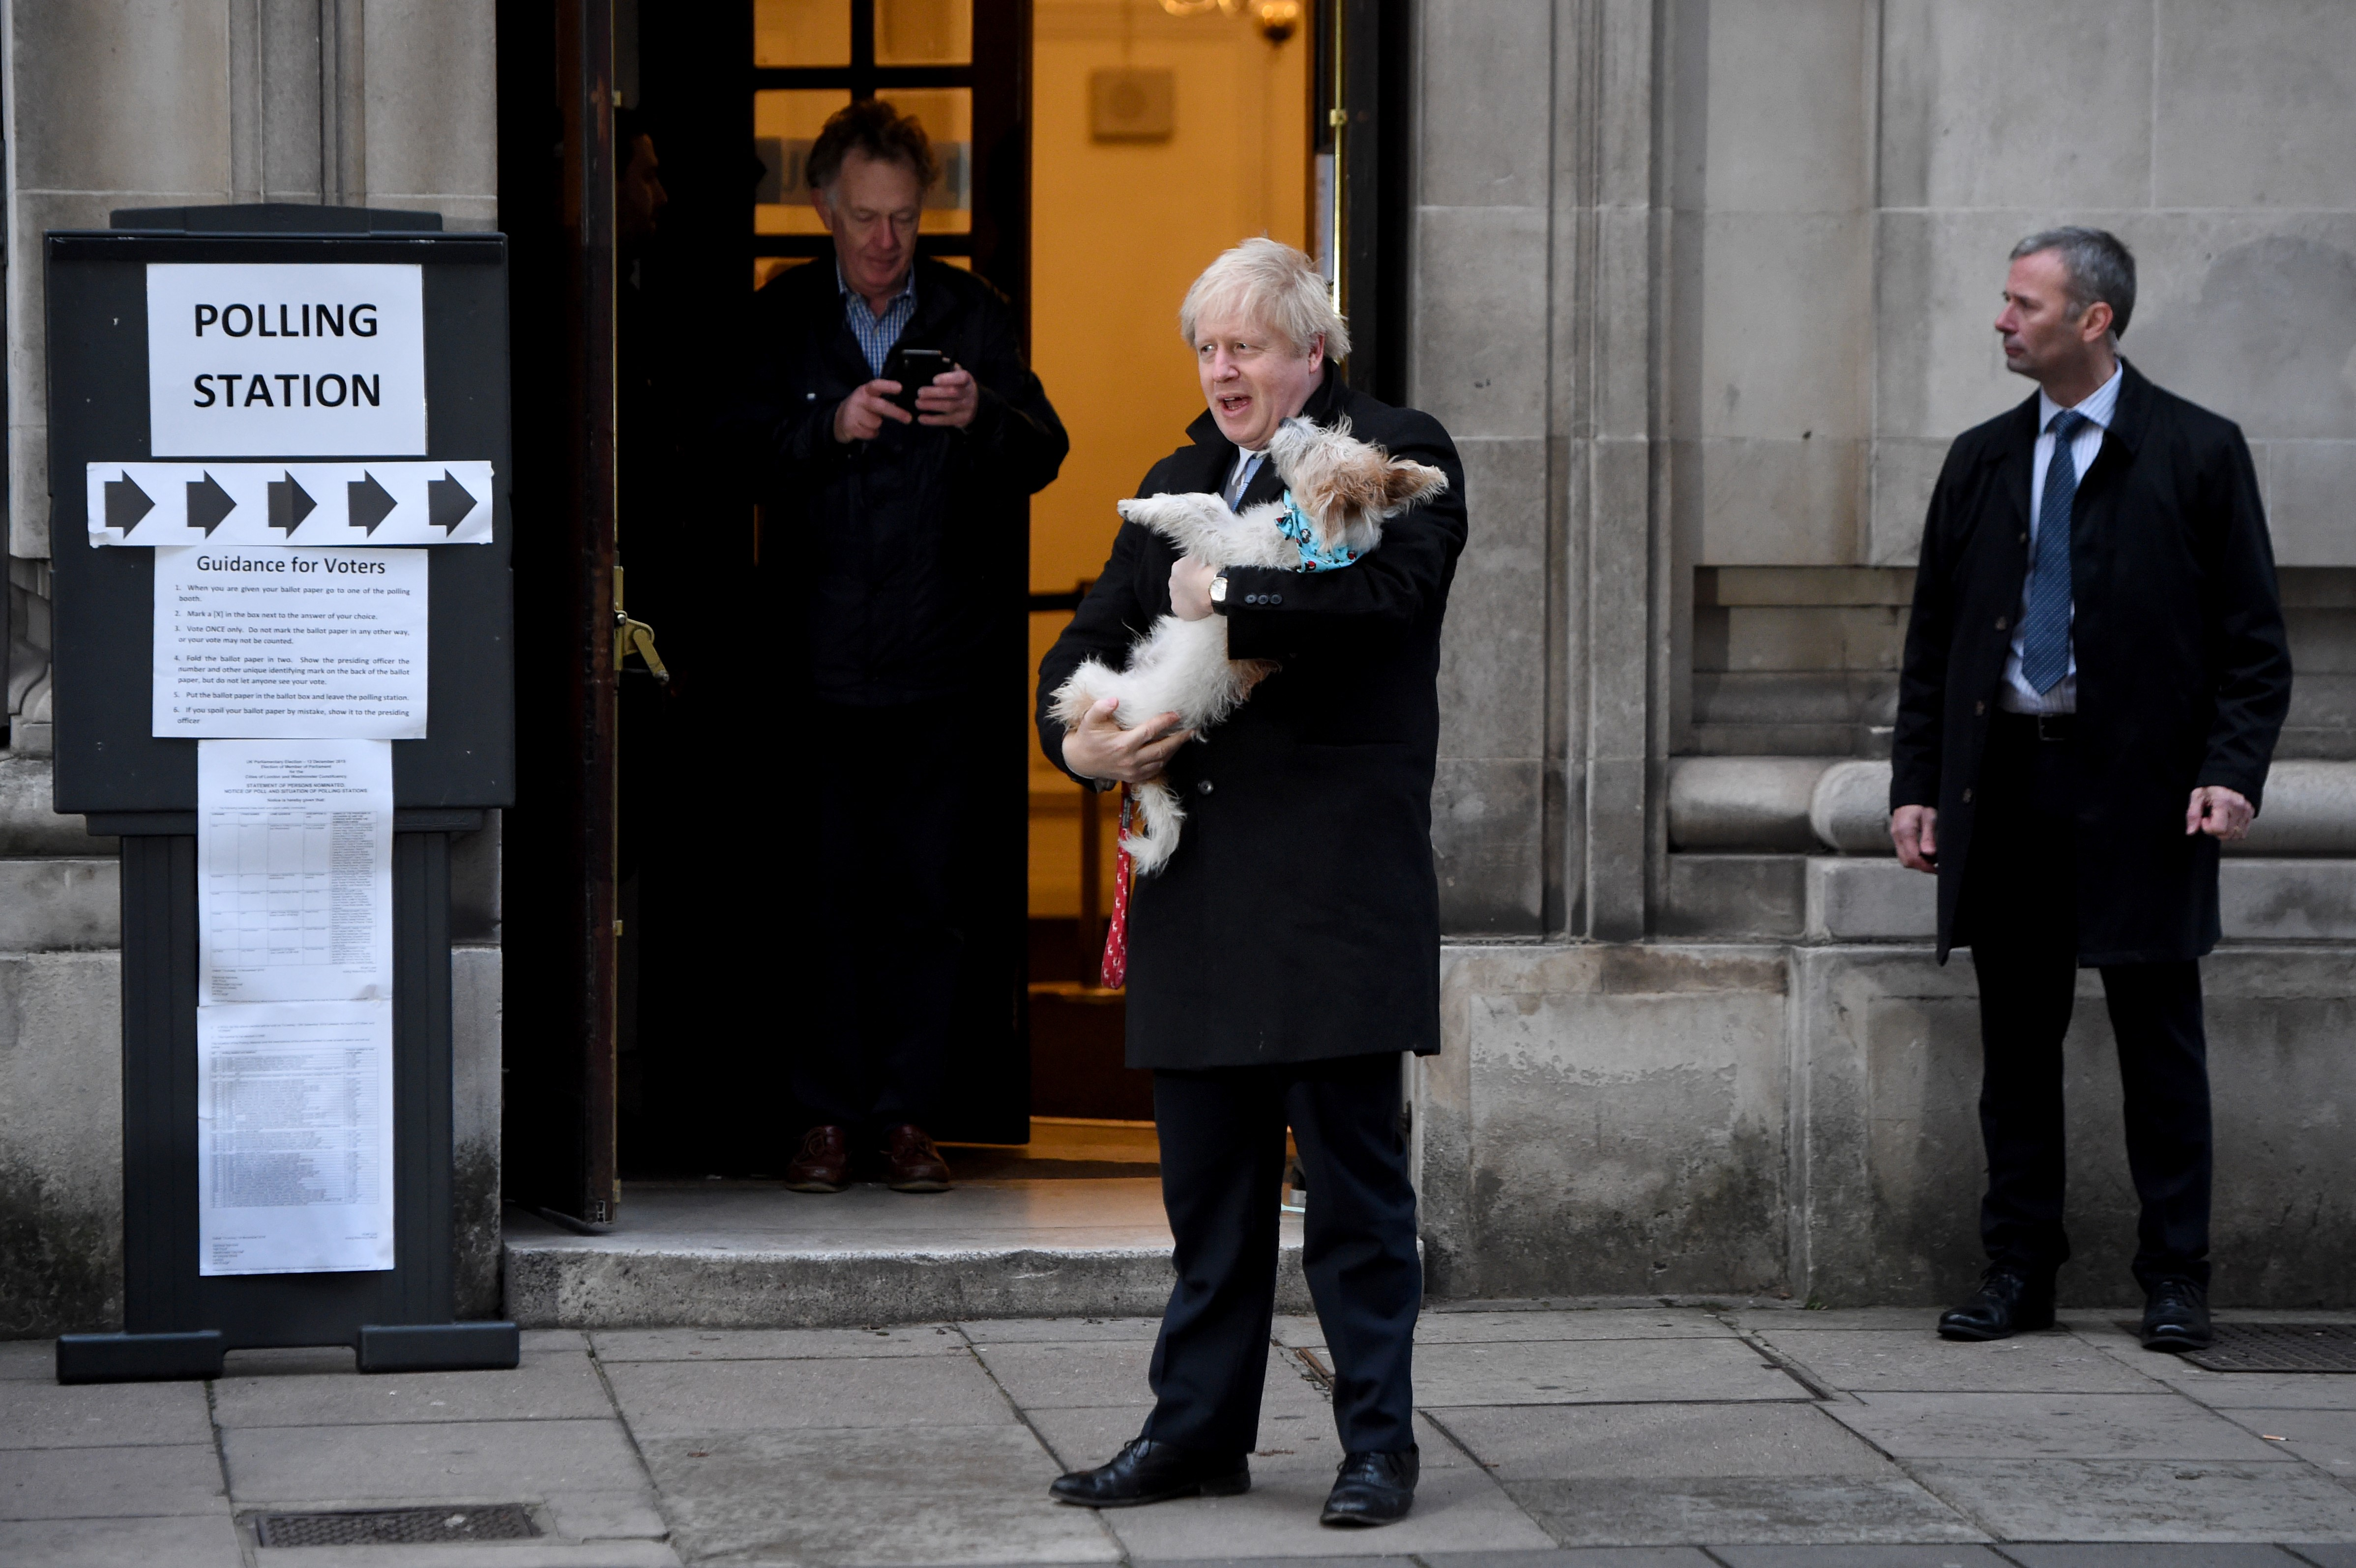 LONDON, UNITED KINGDOM - DECEMBER 12: UK Prime Minister Boris Johnson departs after casting his vote at Methodist Hall polling station on December 12, 2019 in London, England. The current Conservative Prime Minister Boris Johnson called the first UK winter election for nearly a century in an attempt to gain a working majority to break the parliamentary deadlock over Brexit. The election results from across the country are being counted overnight and an overall result is expected in the early hours of Friday morning. (Photo by Kate Green/Anadolu Agency via Getty Images)